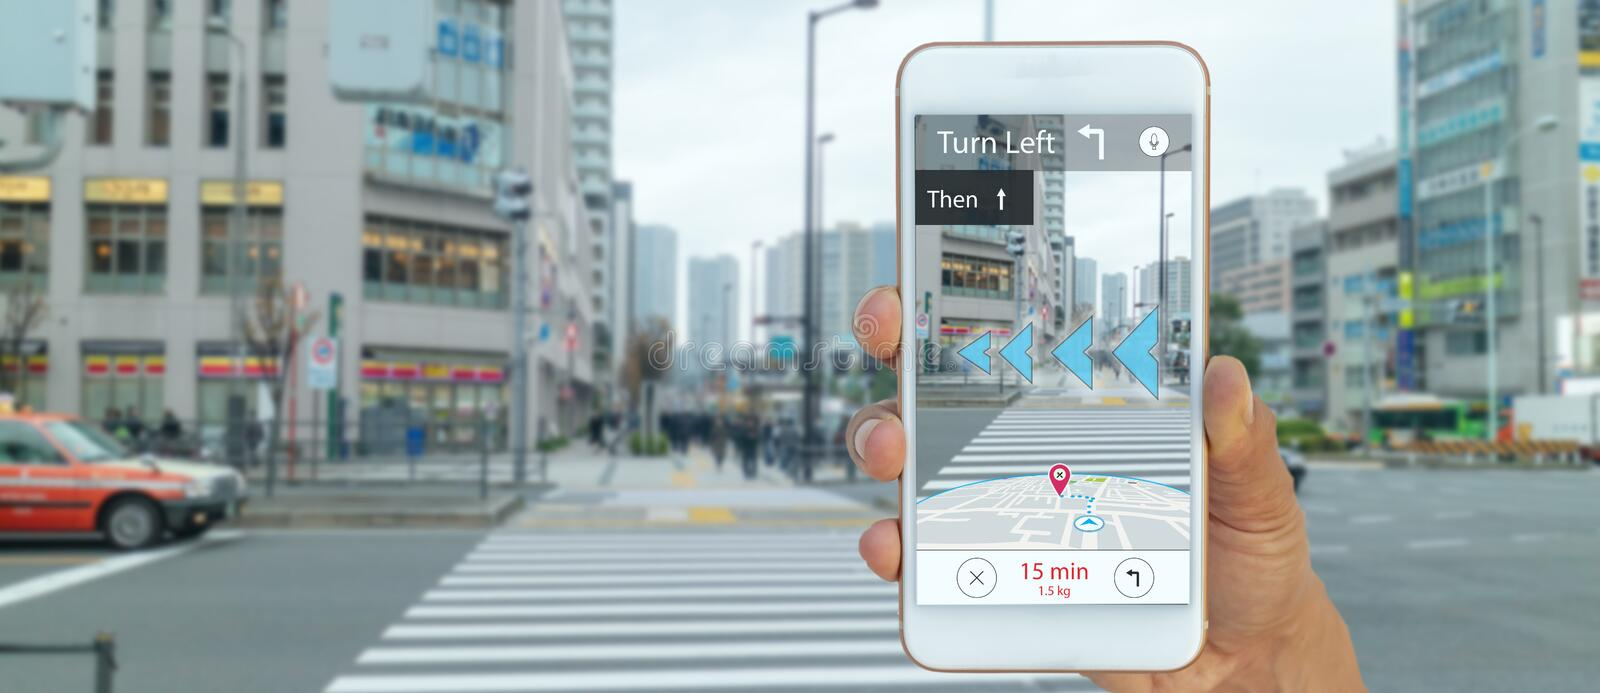 Map use ai, artificial intelligence algorithms to determine what individuals want to see When GPS location service are turned on a. Nd the Maps app is opened stock photography